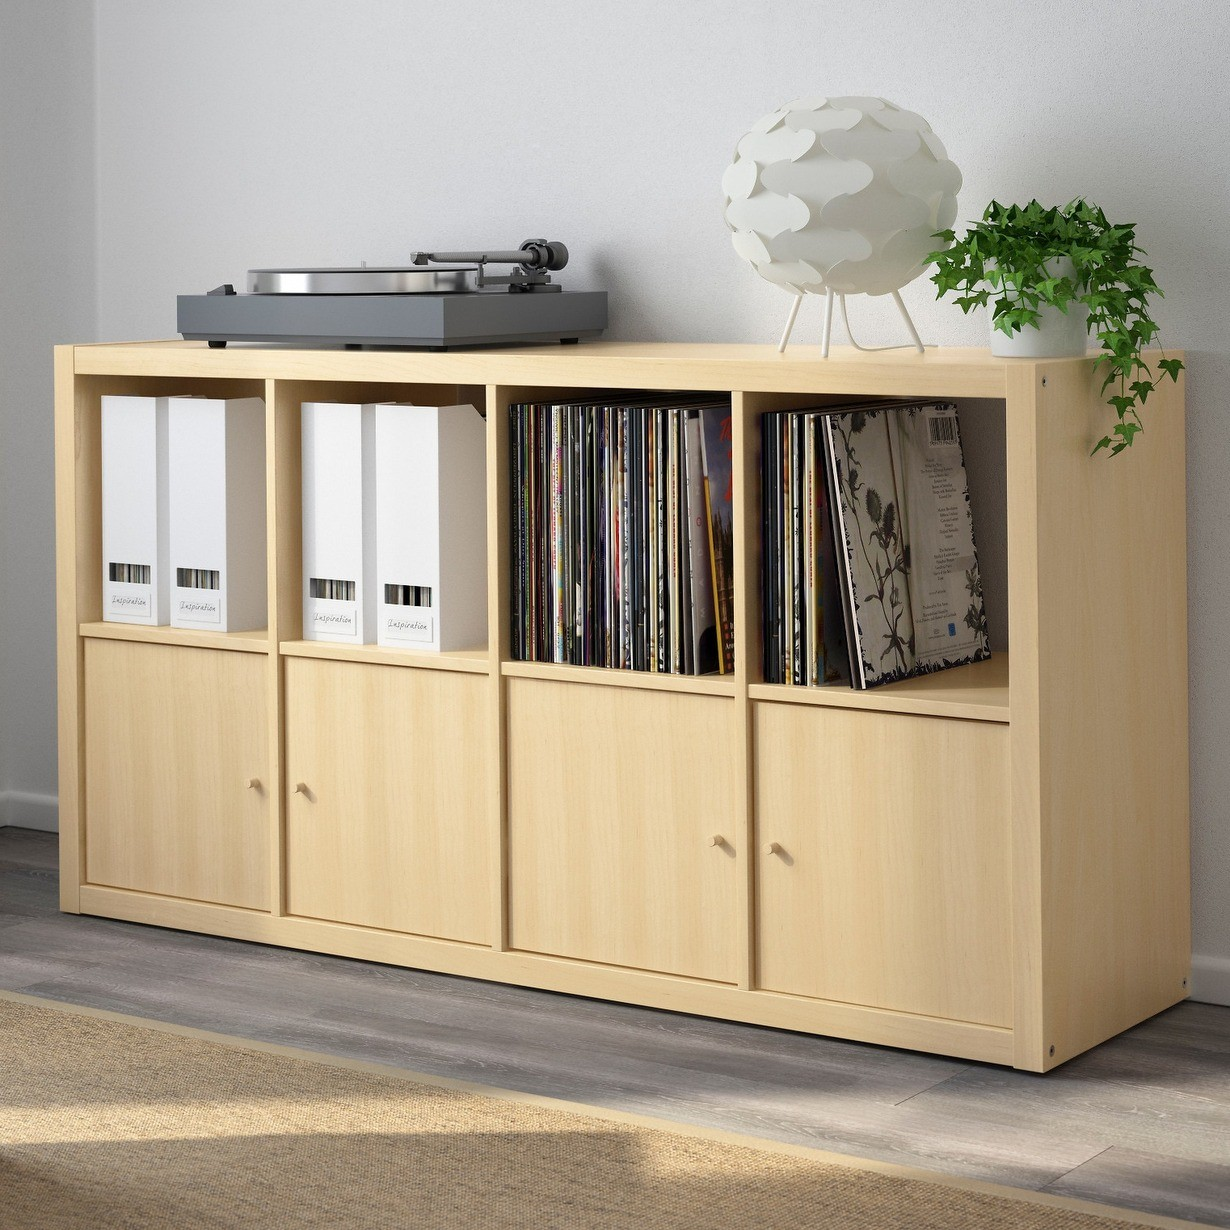 The Best Vinyl Record Storage Options  Turntable Kitchen